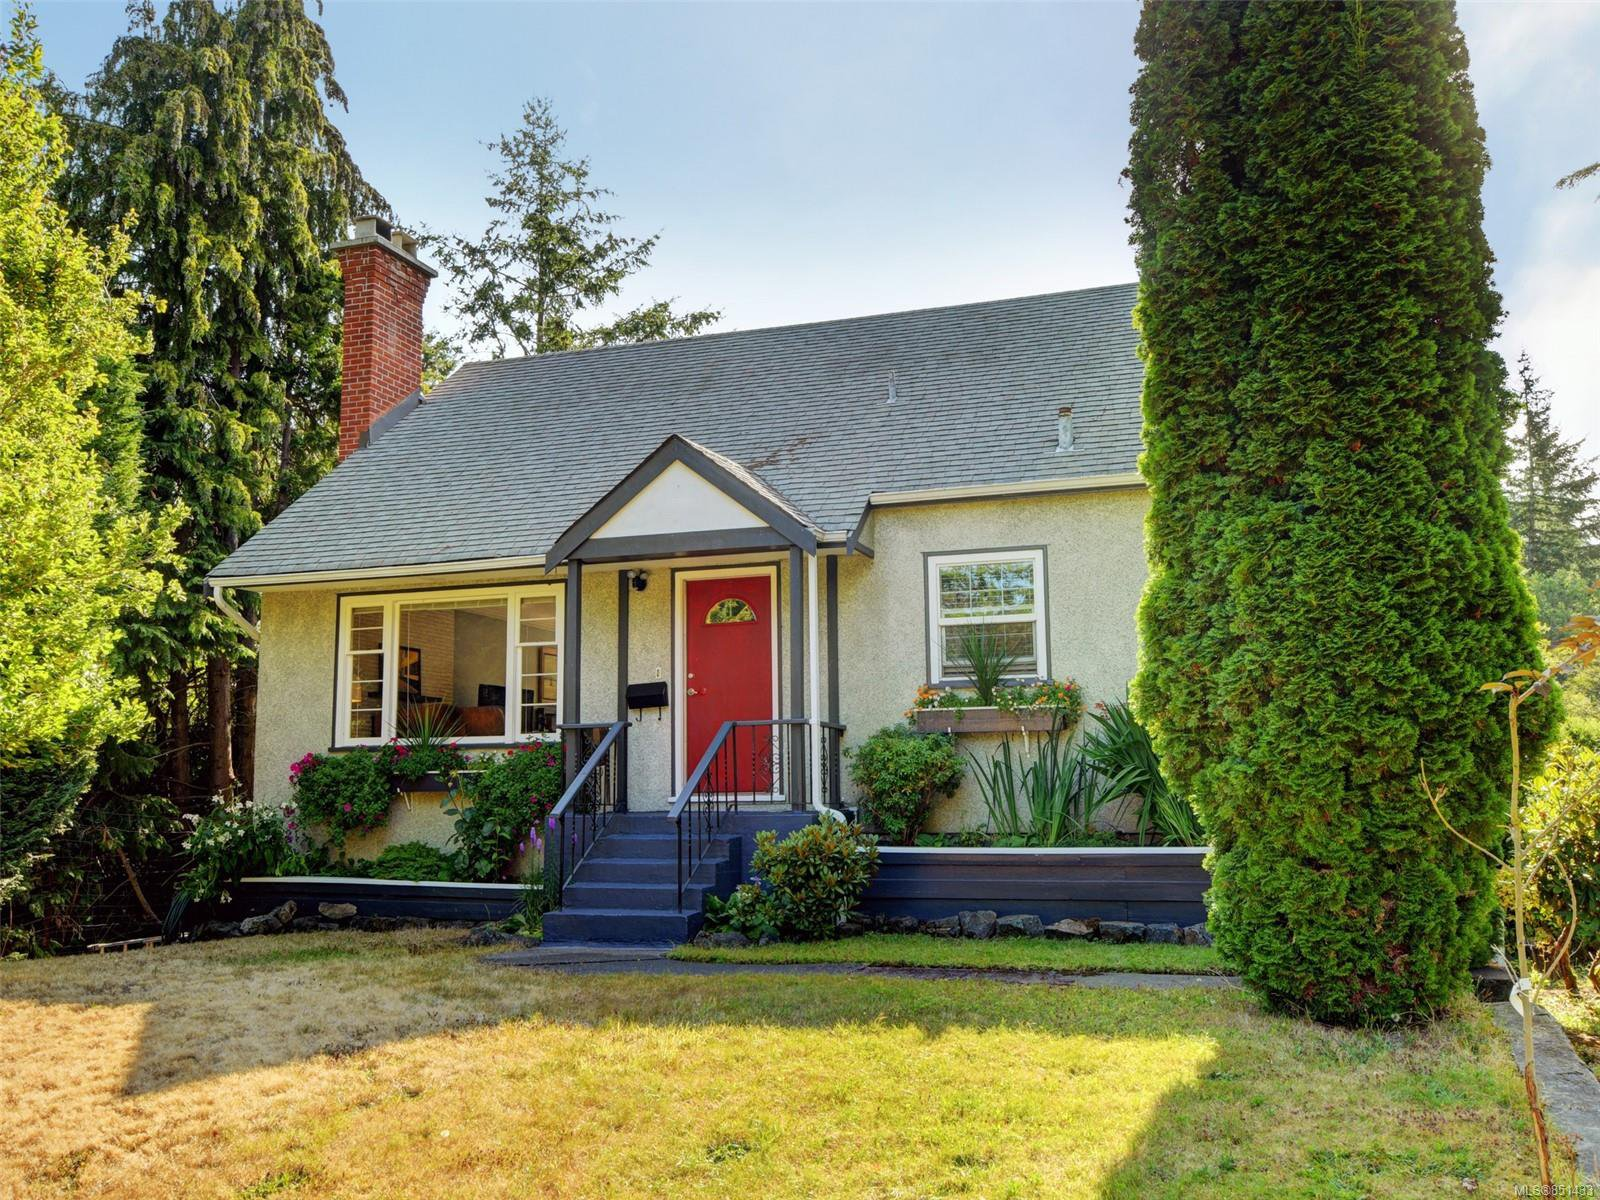 Main Photo: 1155 Royal Oak Dr in : SE Sunnymead House for sale (Saanich East)  : MLS®# 851433